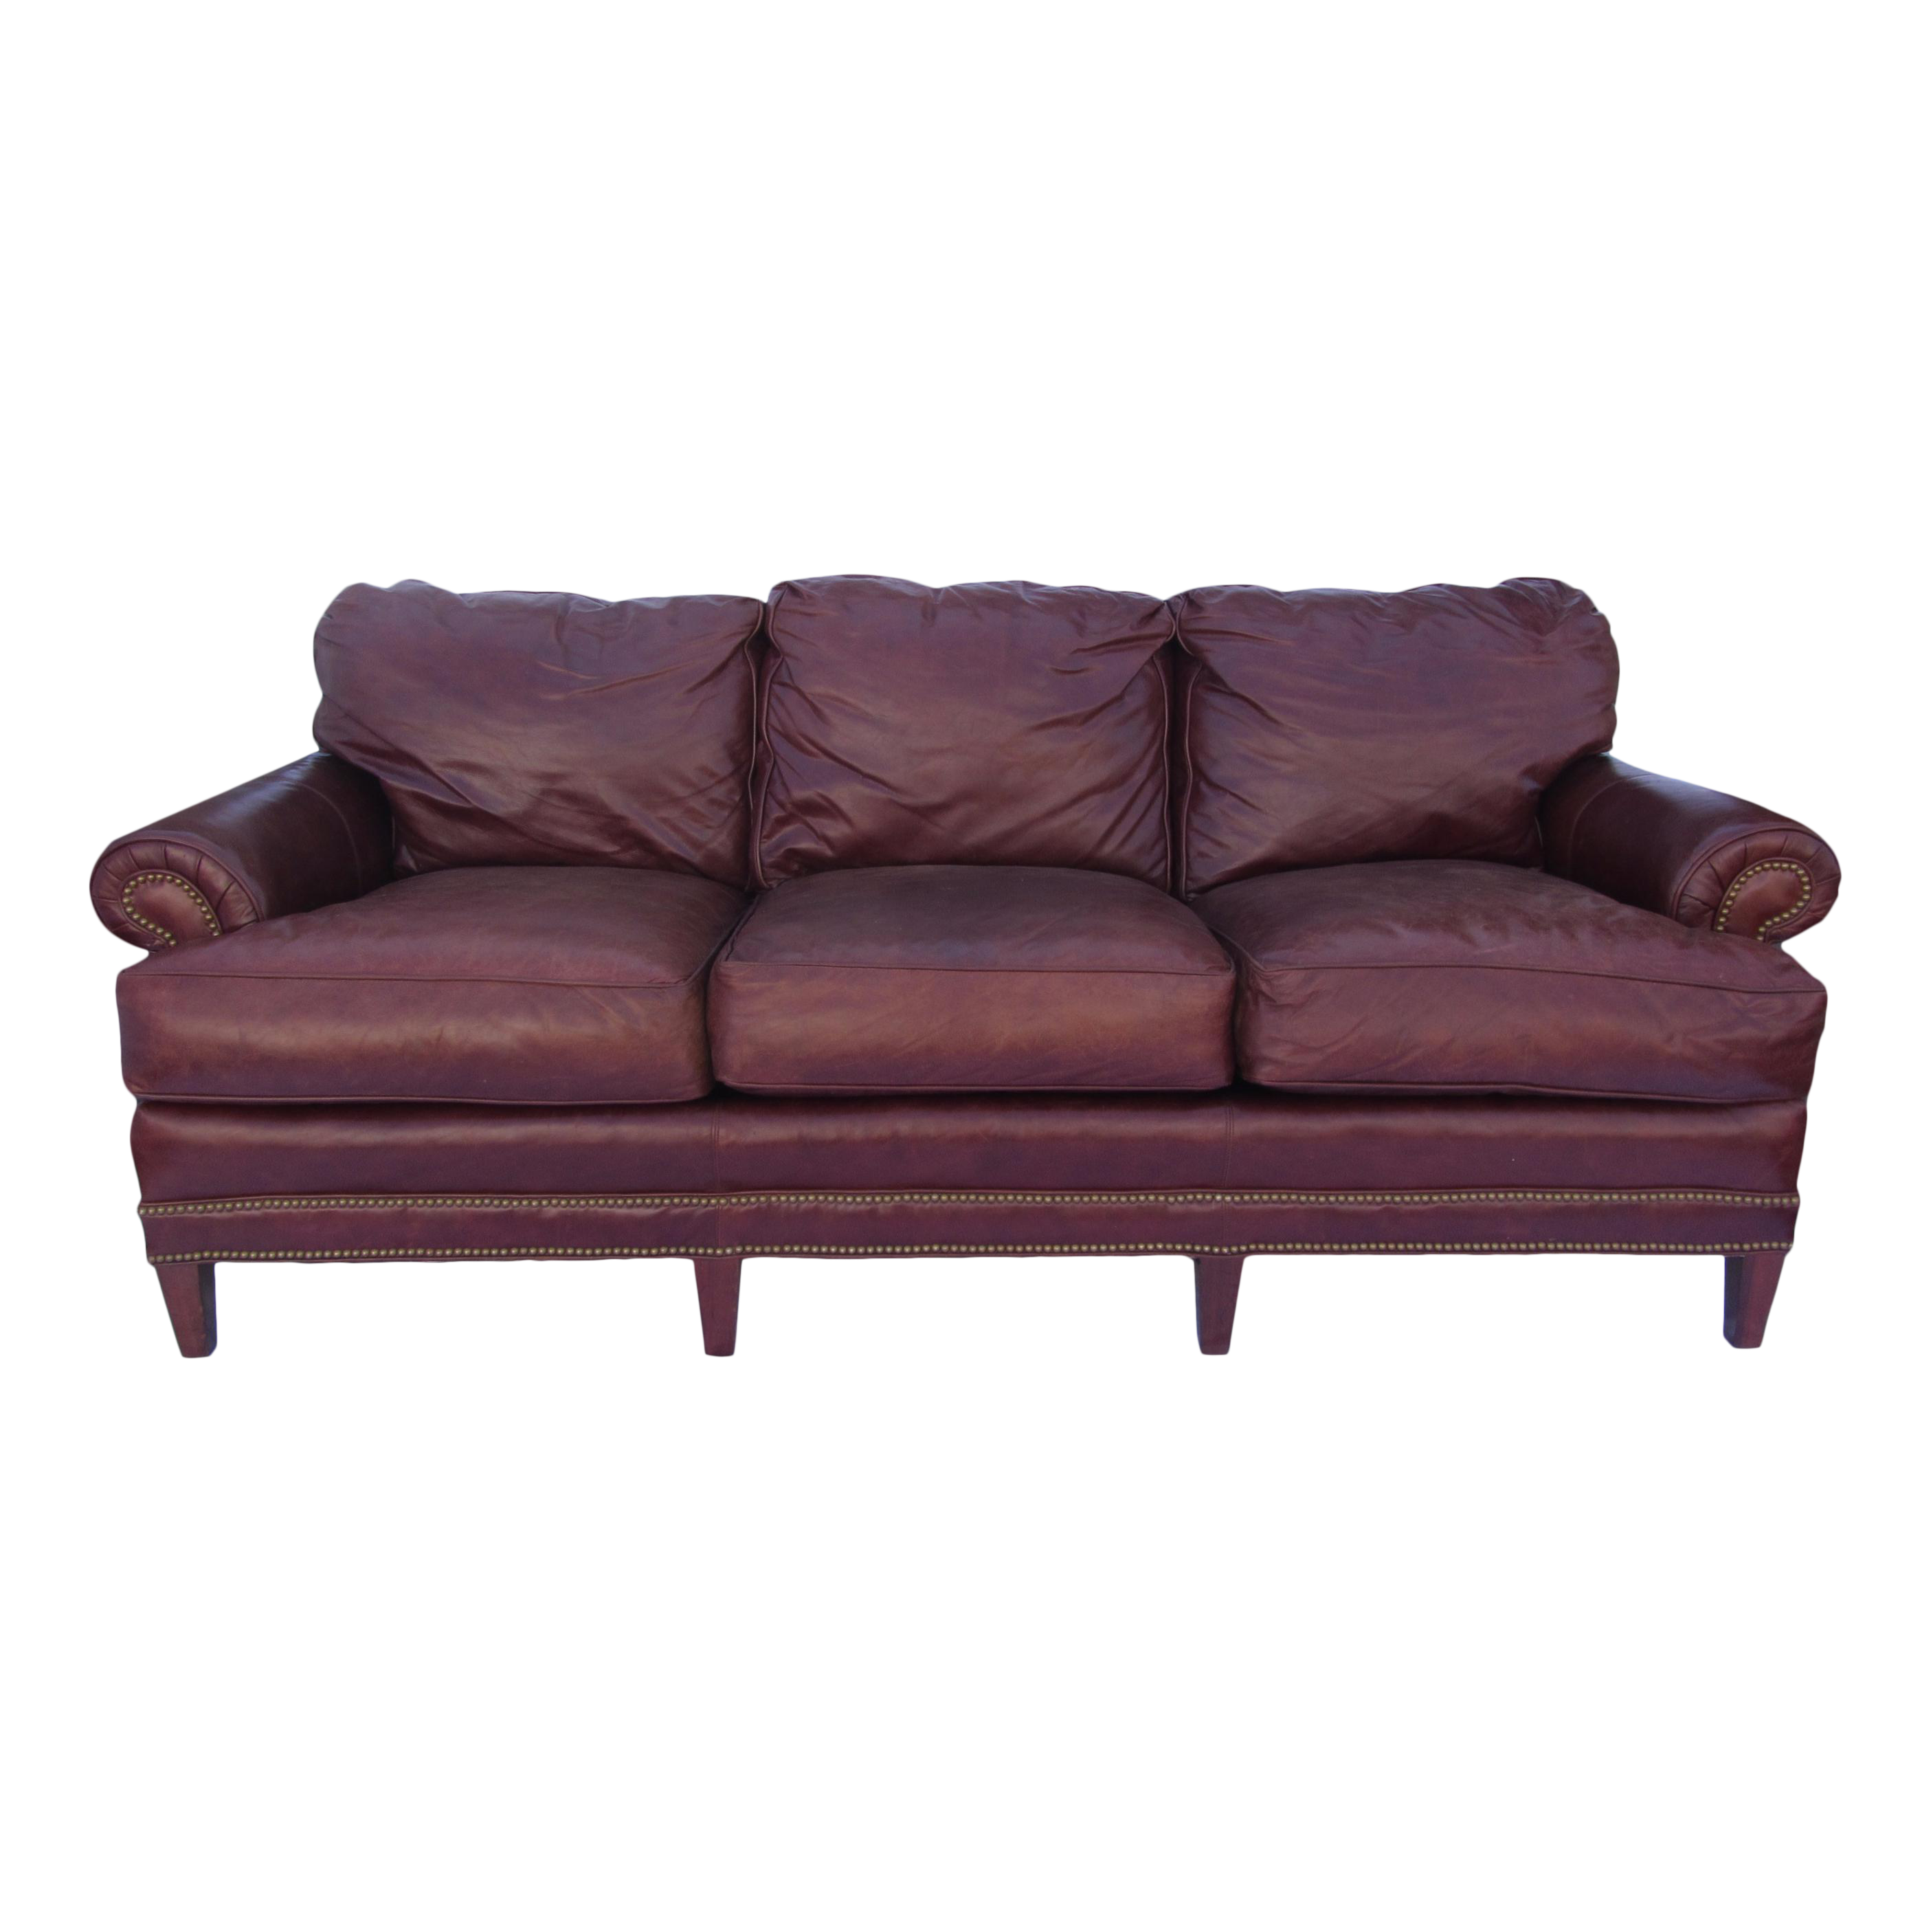 Lovely Pearson Chestnut Leather Sofa With Brass Nailhead Trim